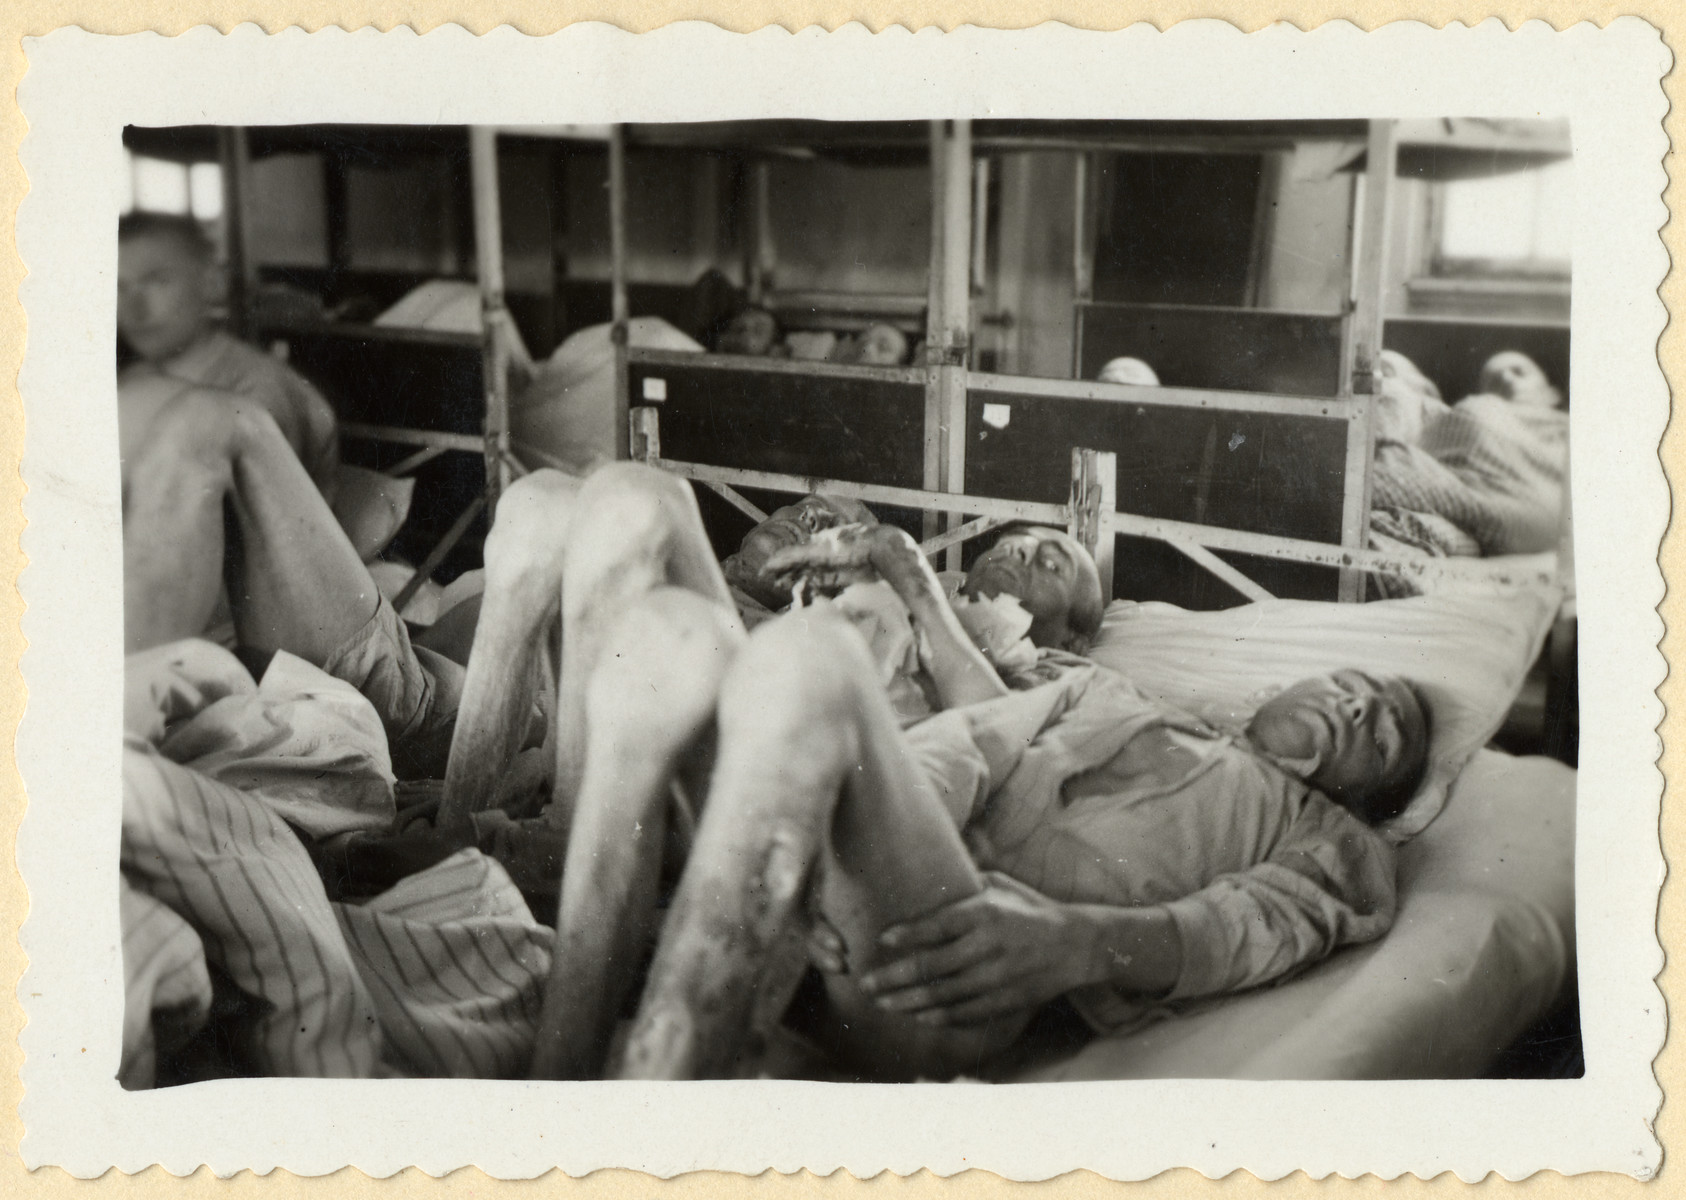 Starving prisoners lie on their bunks in the Dachau concentration camp shortly after liberation.  Among those pictured is Stanislaw Przedborski (tentatively identified, third from the right on the bed in the foreground).